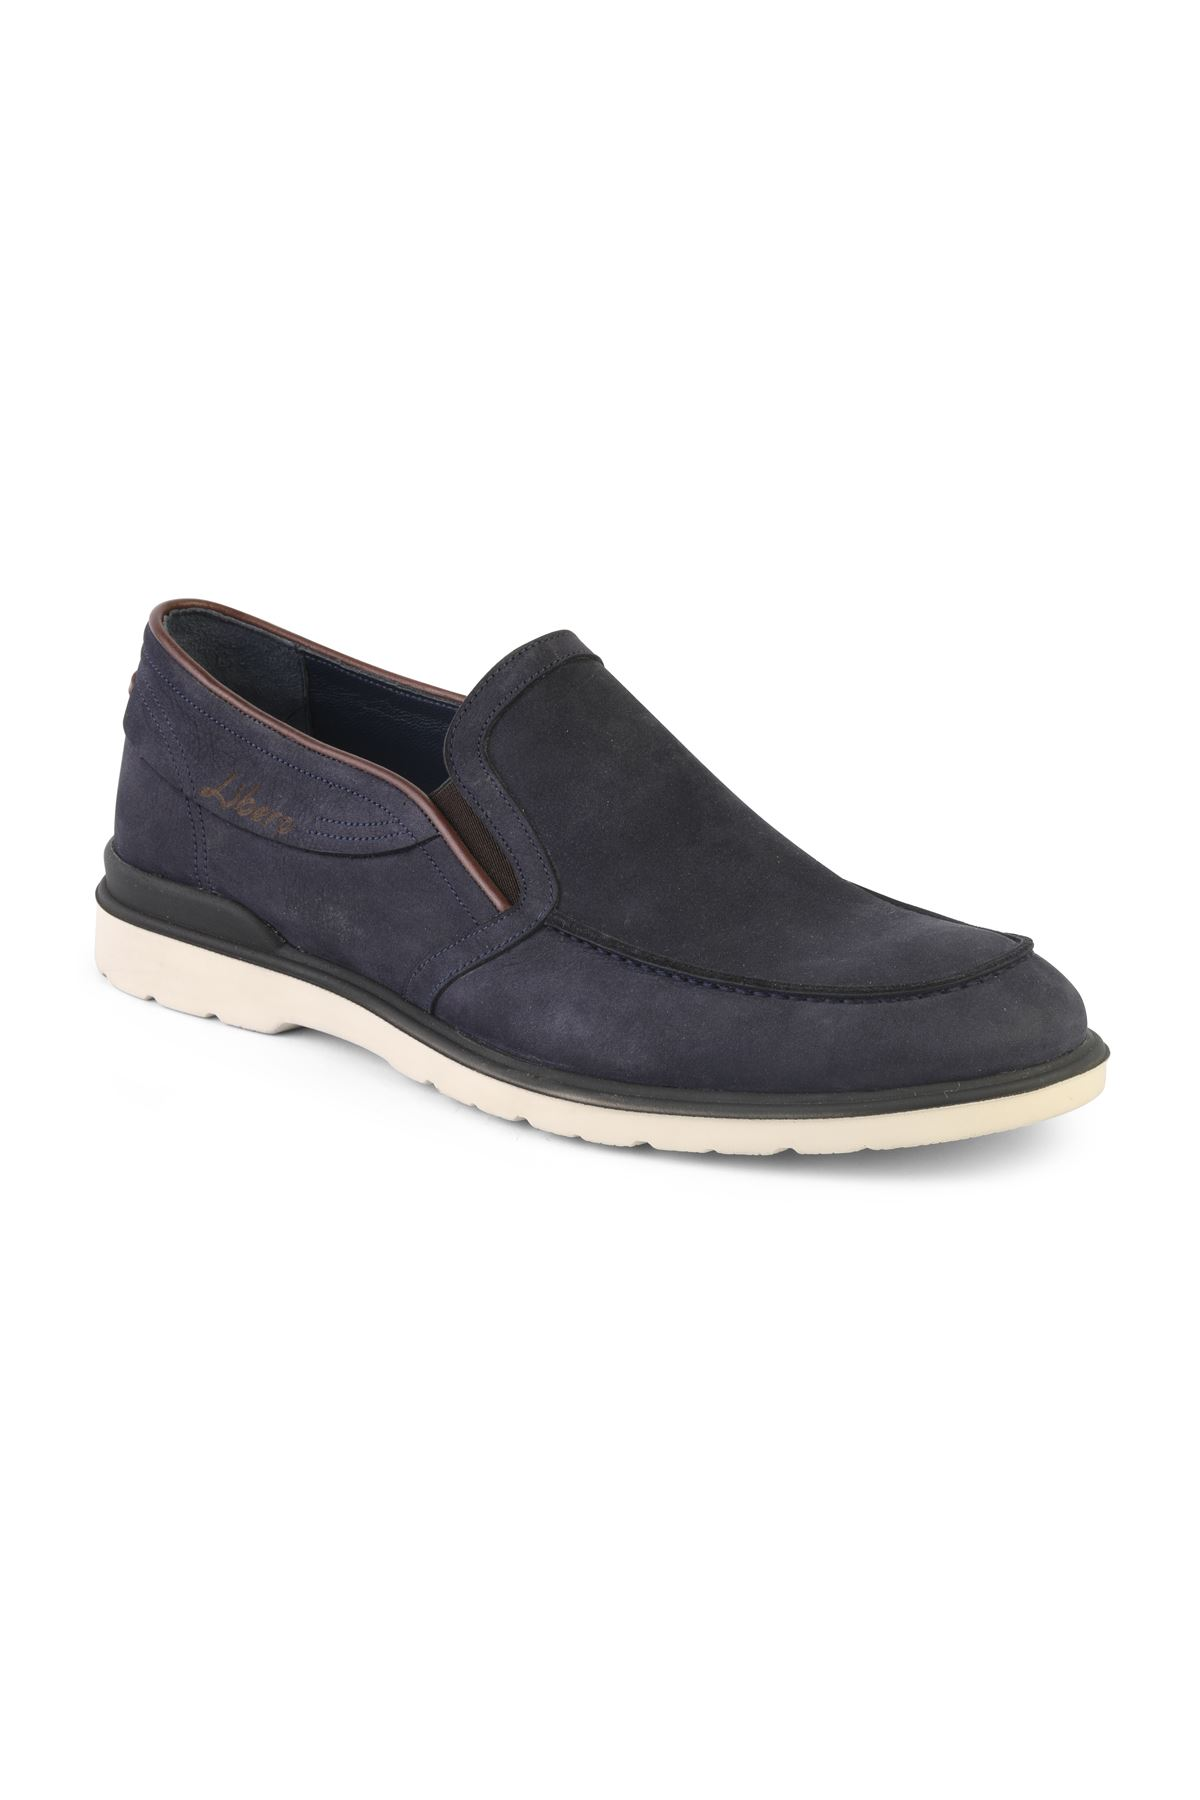 Libero T1249 Navy Blue Loafer Shoes